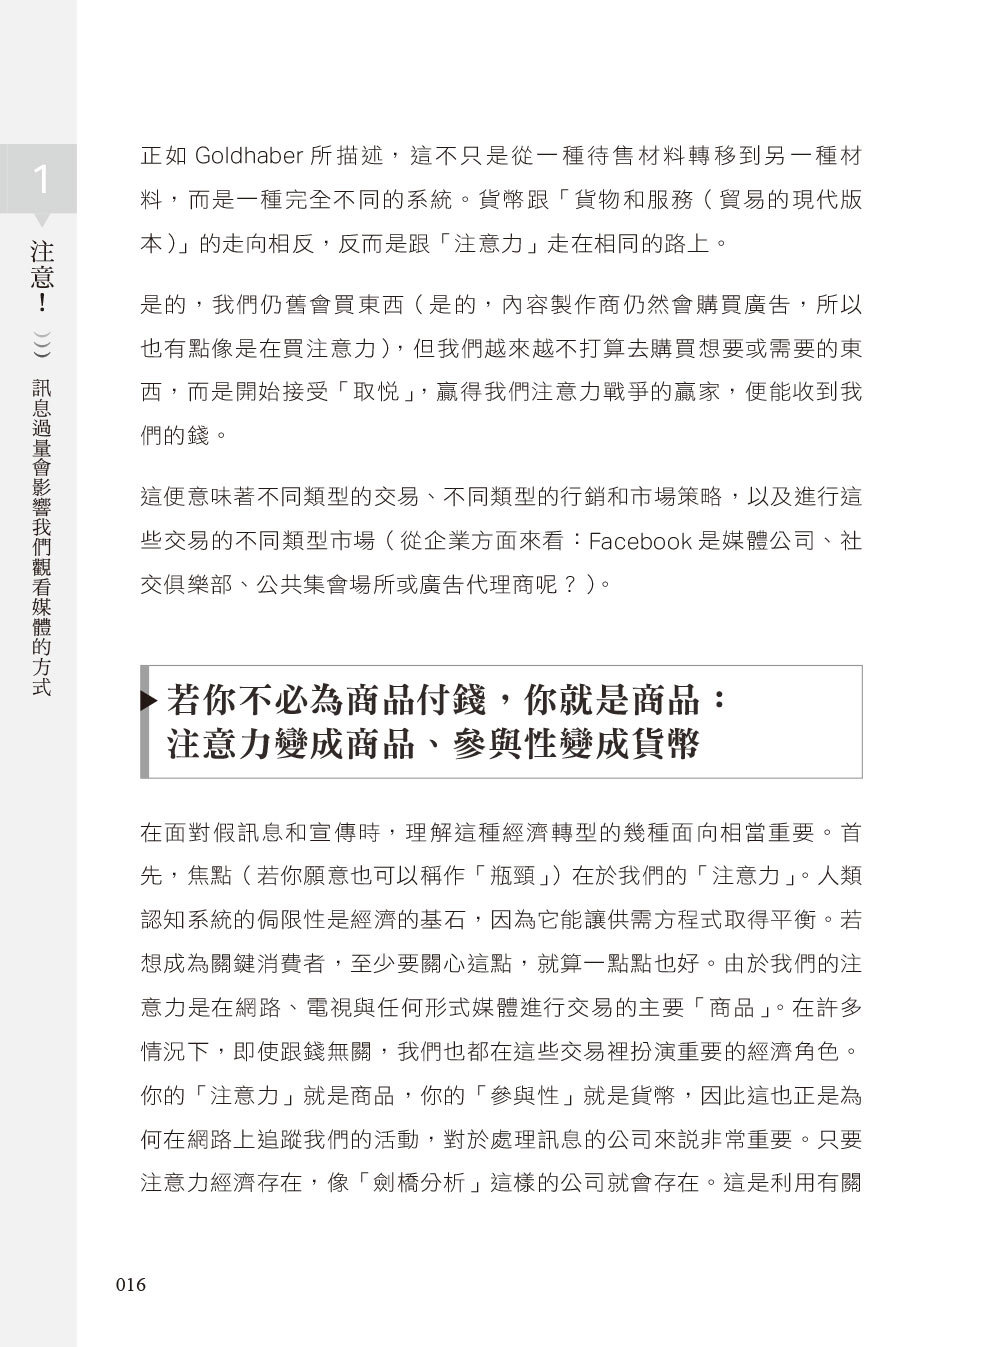 誰在帶風向、玩精準行銷|認知駭客如何操弄人心 (Data Versus Democracy: How Big Data Algorithms Shape Opinions and Alter the Course of History)-preview-5